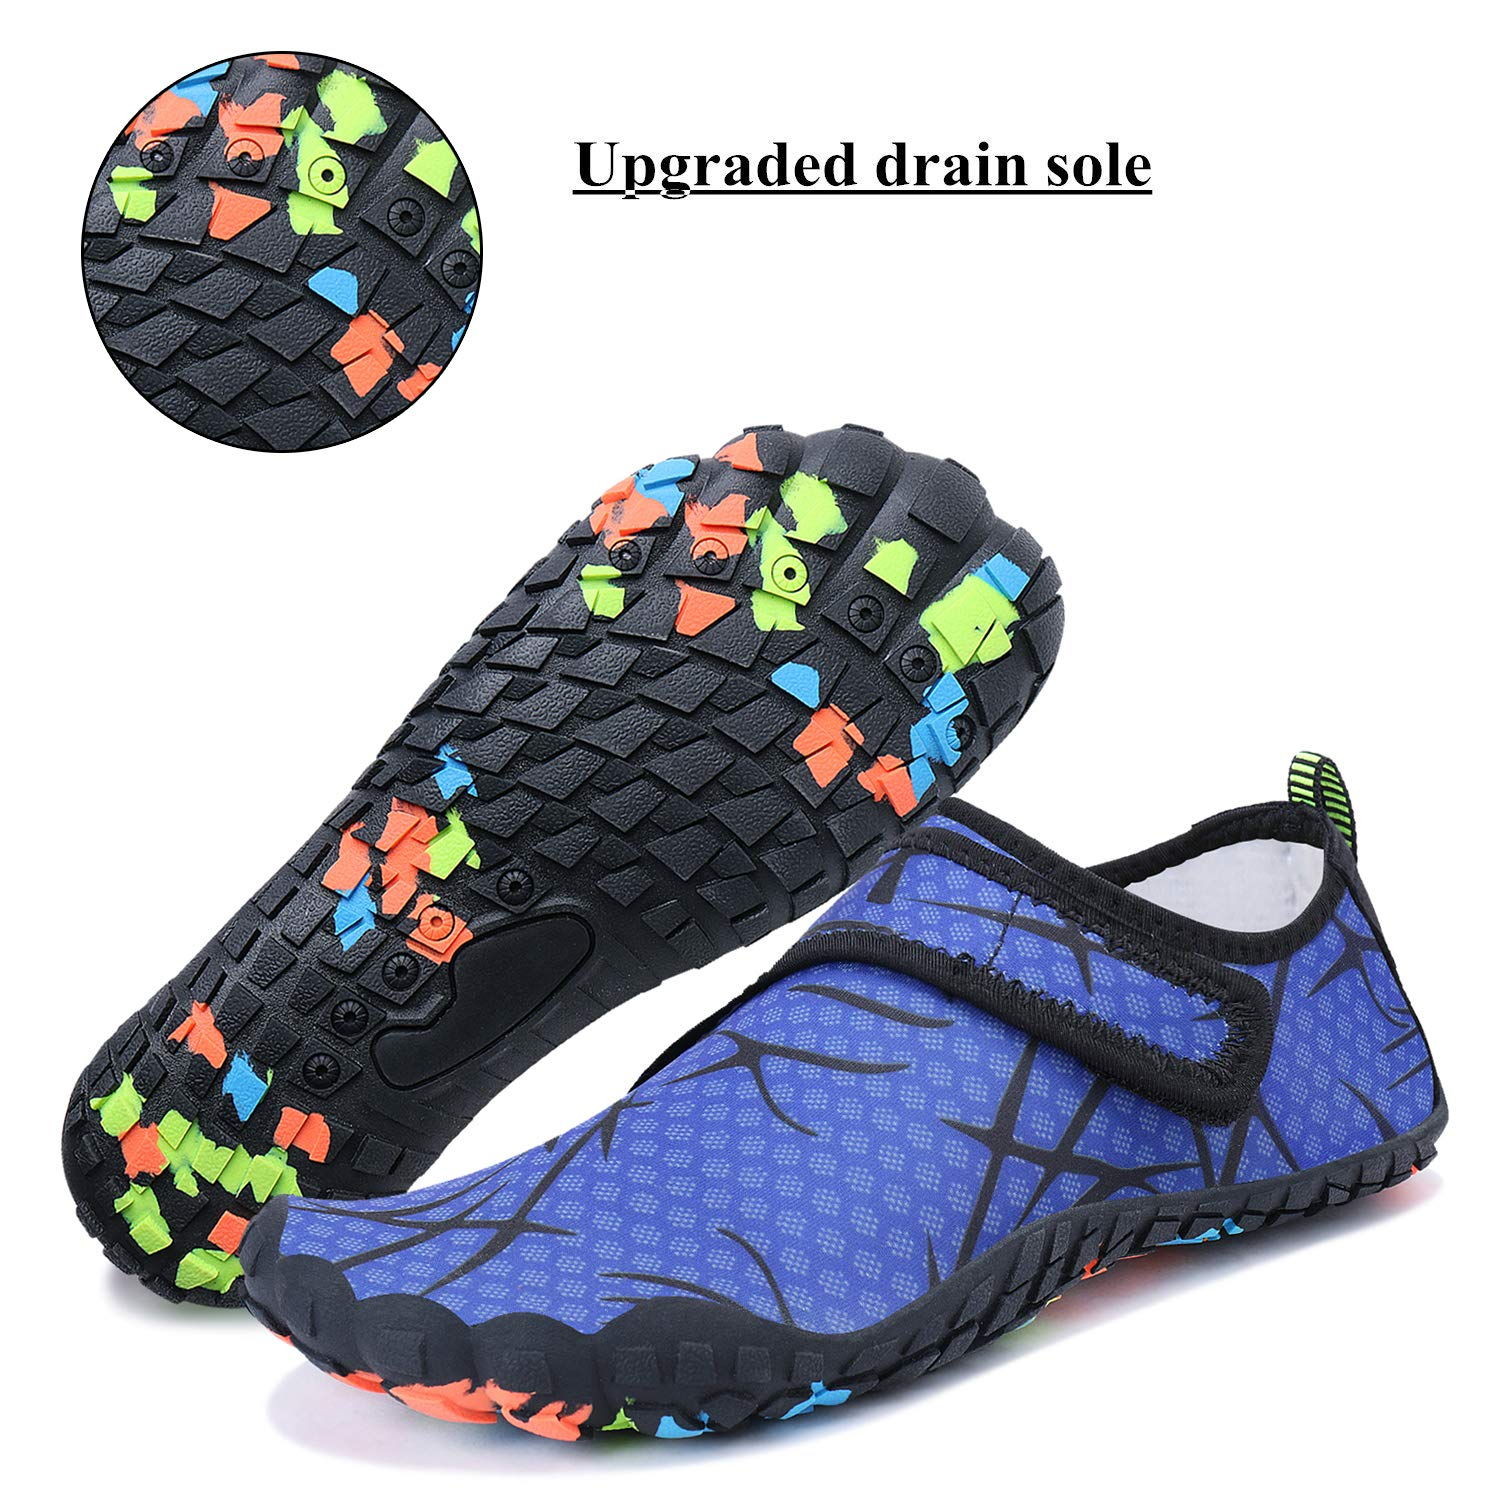 2ccd1a96608ee0 ... Load image into Gallery viewer, WXDZ Men Women Water Shoes Quick Dry  Barefoot Aqua Socks ...